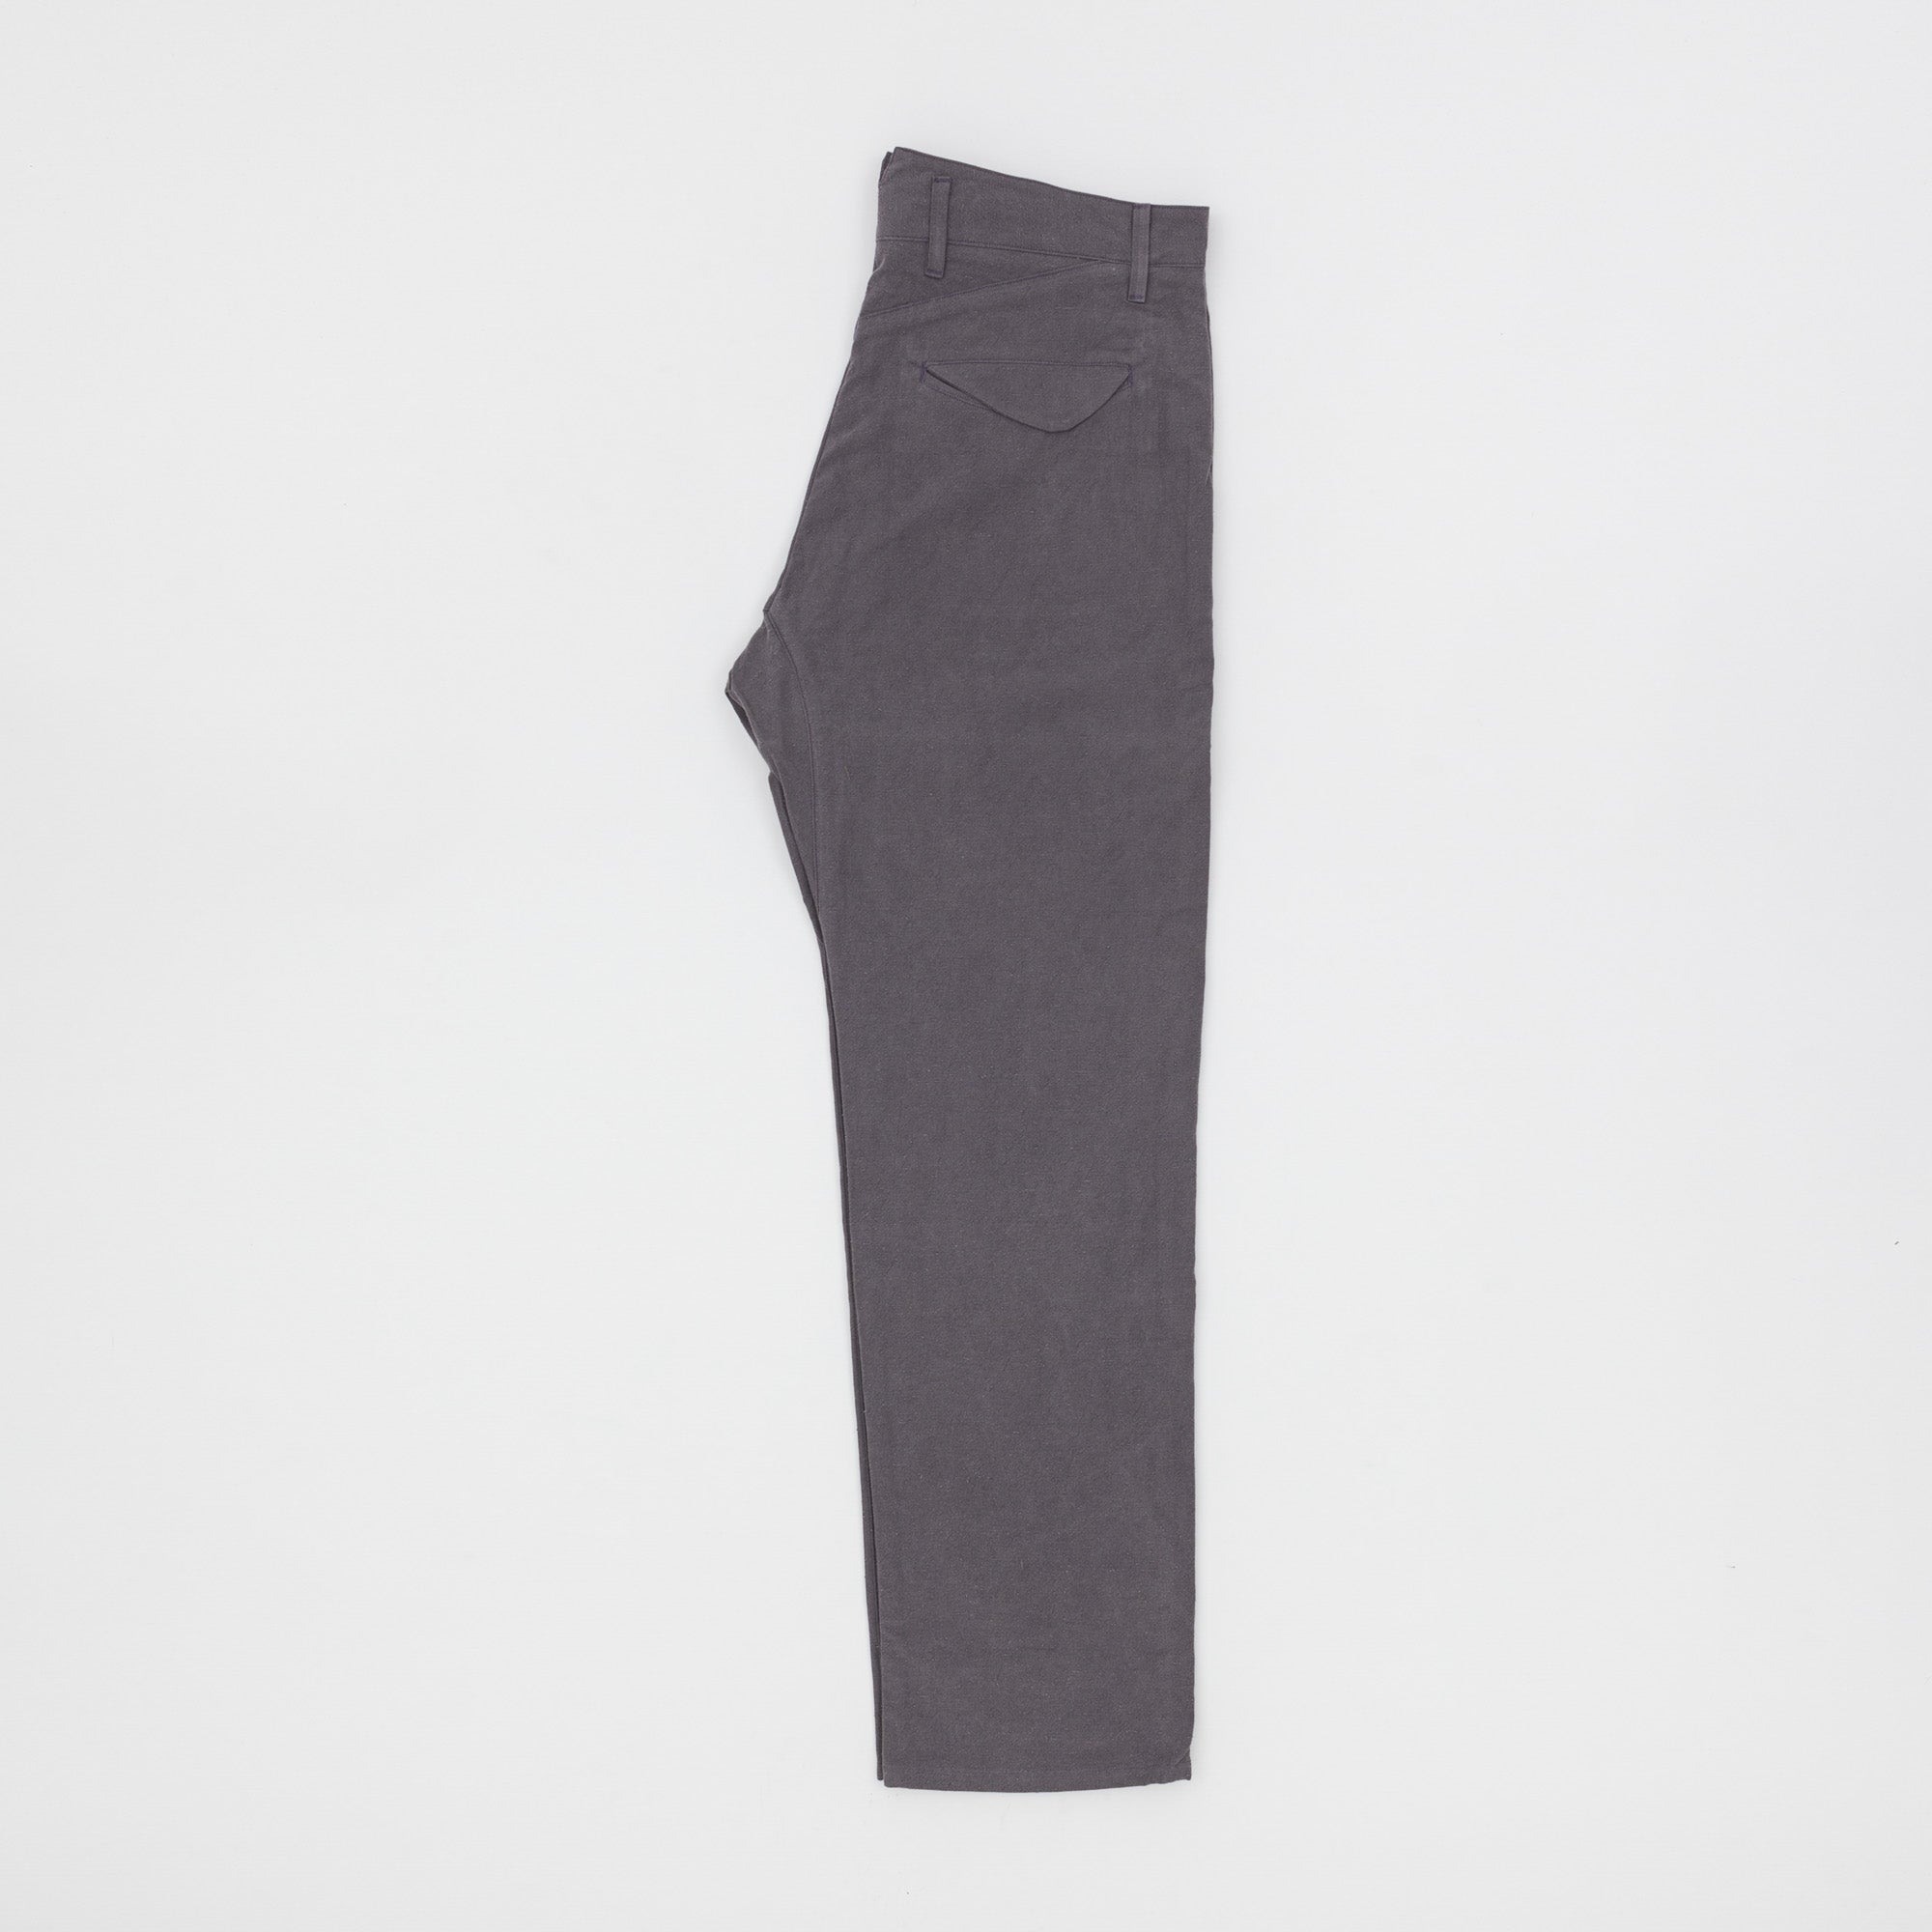 HONEYBADGER PANT